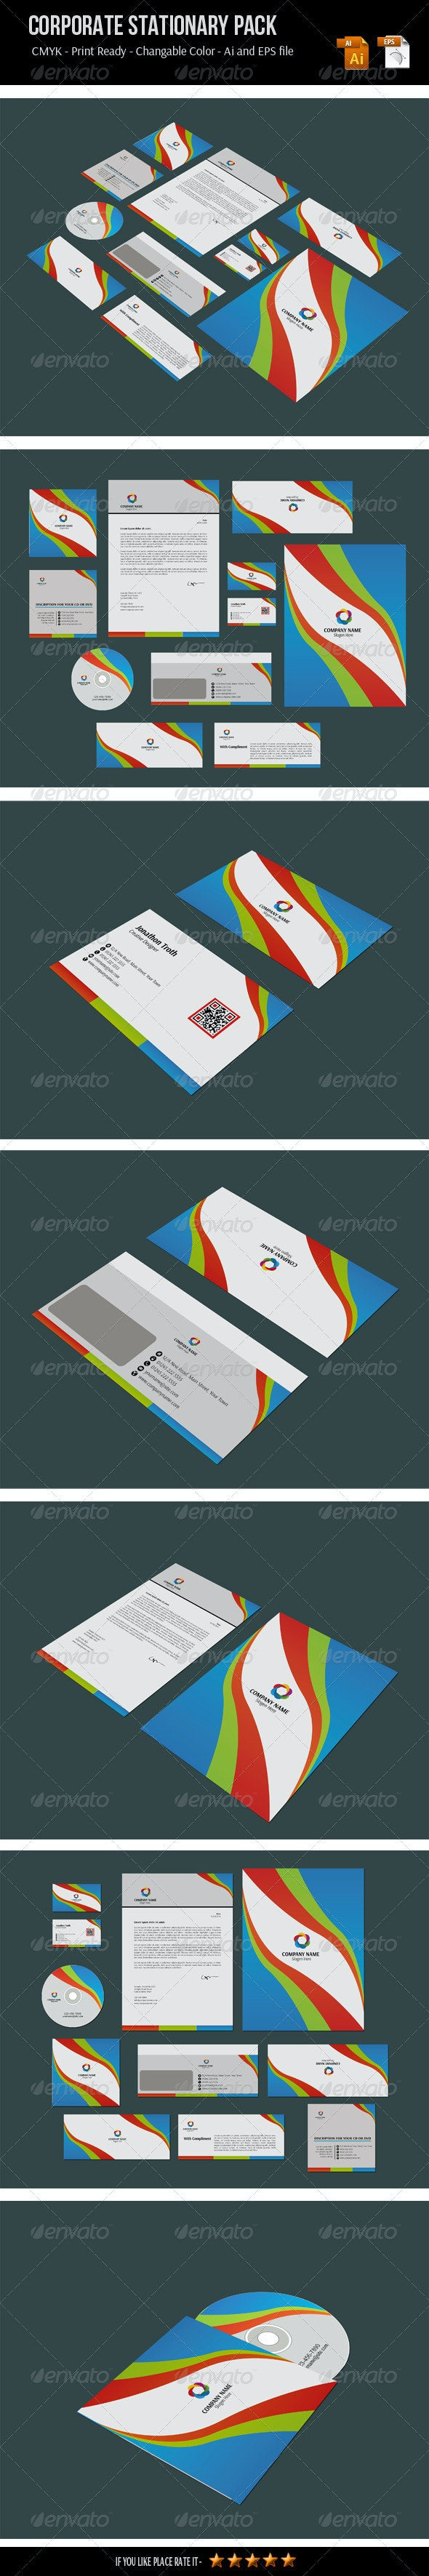 Corporate Stationery Pack - Stationery Print Templates